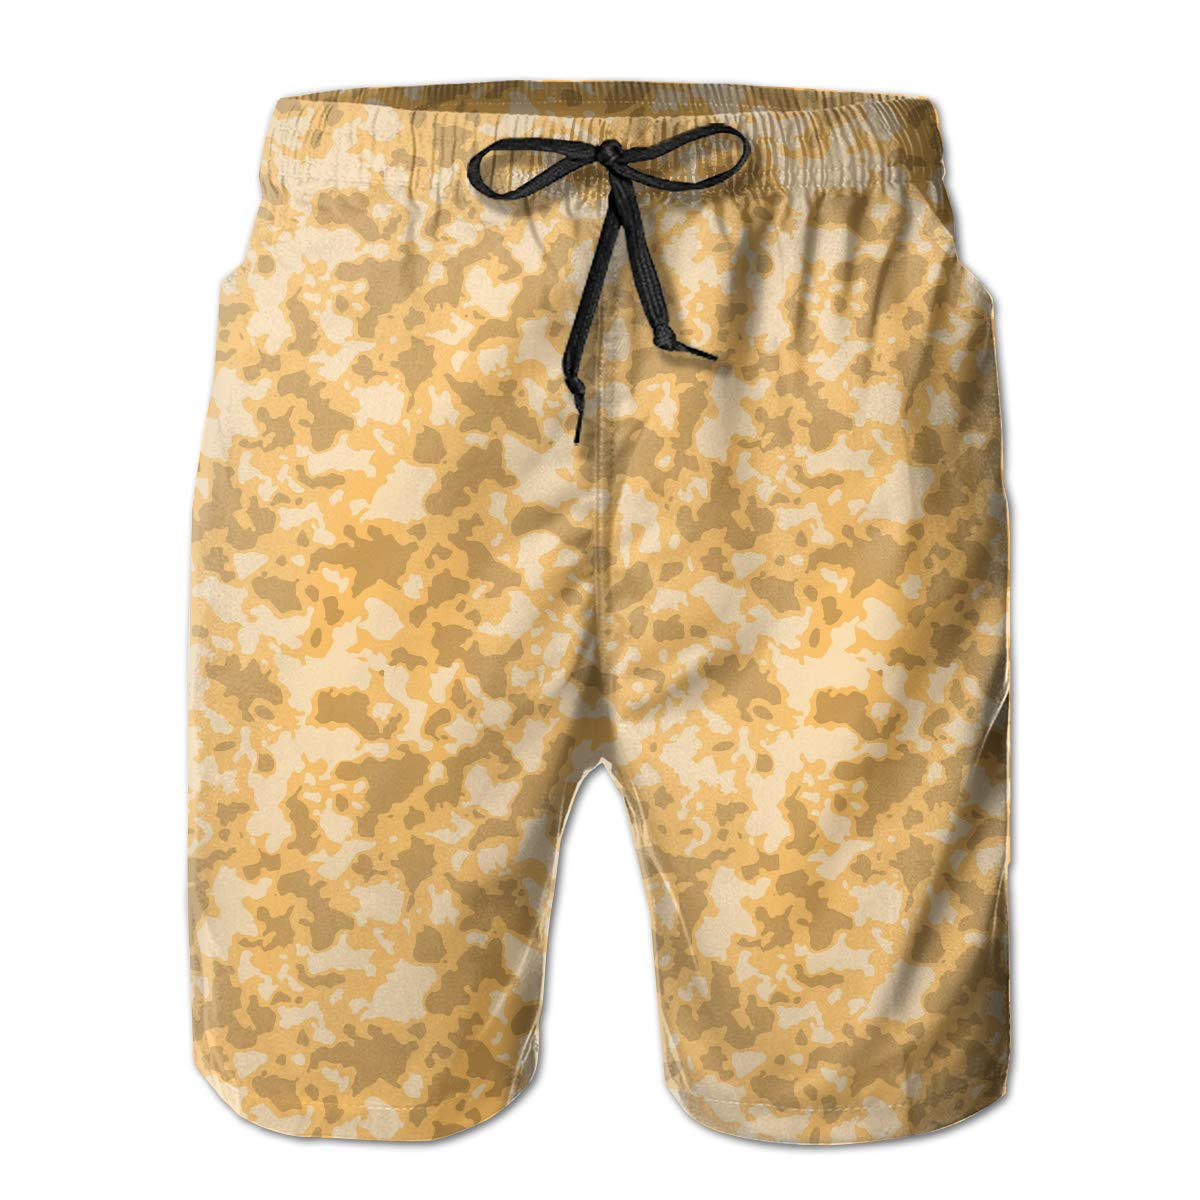 APPCLL Fashion Swim Trunks Mens Board Shorts Camouflage with Mosaic Orange Quick Dry Shorts